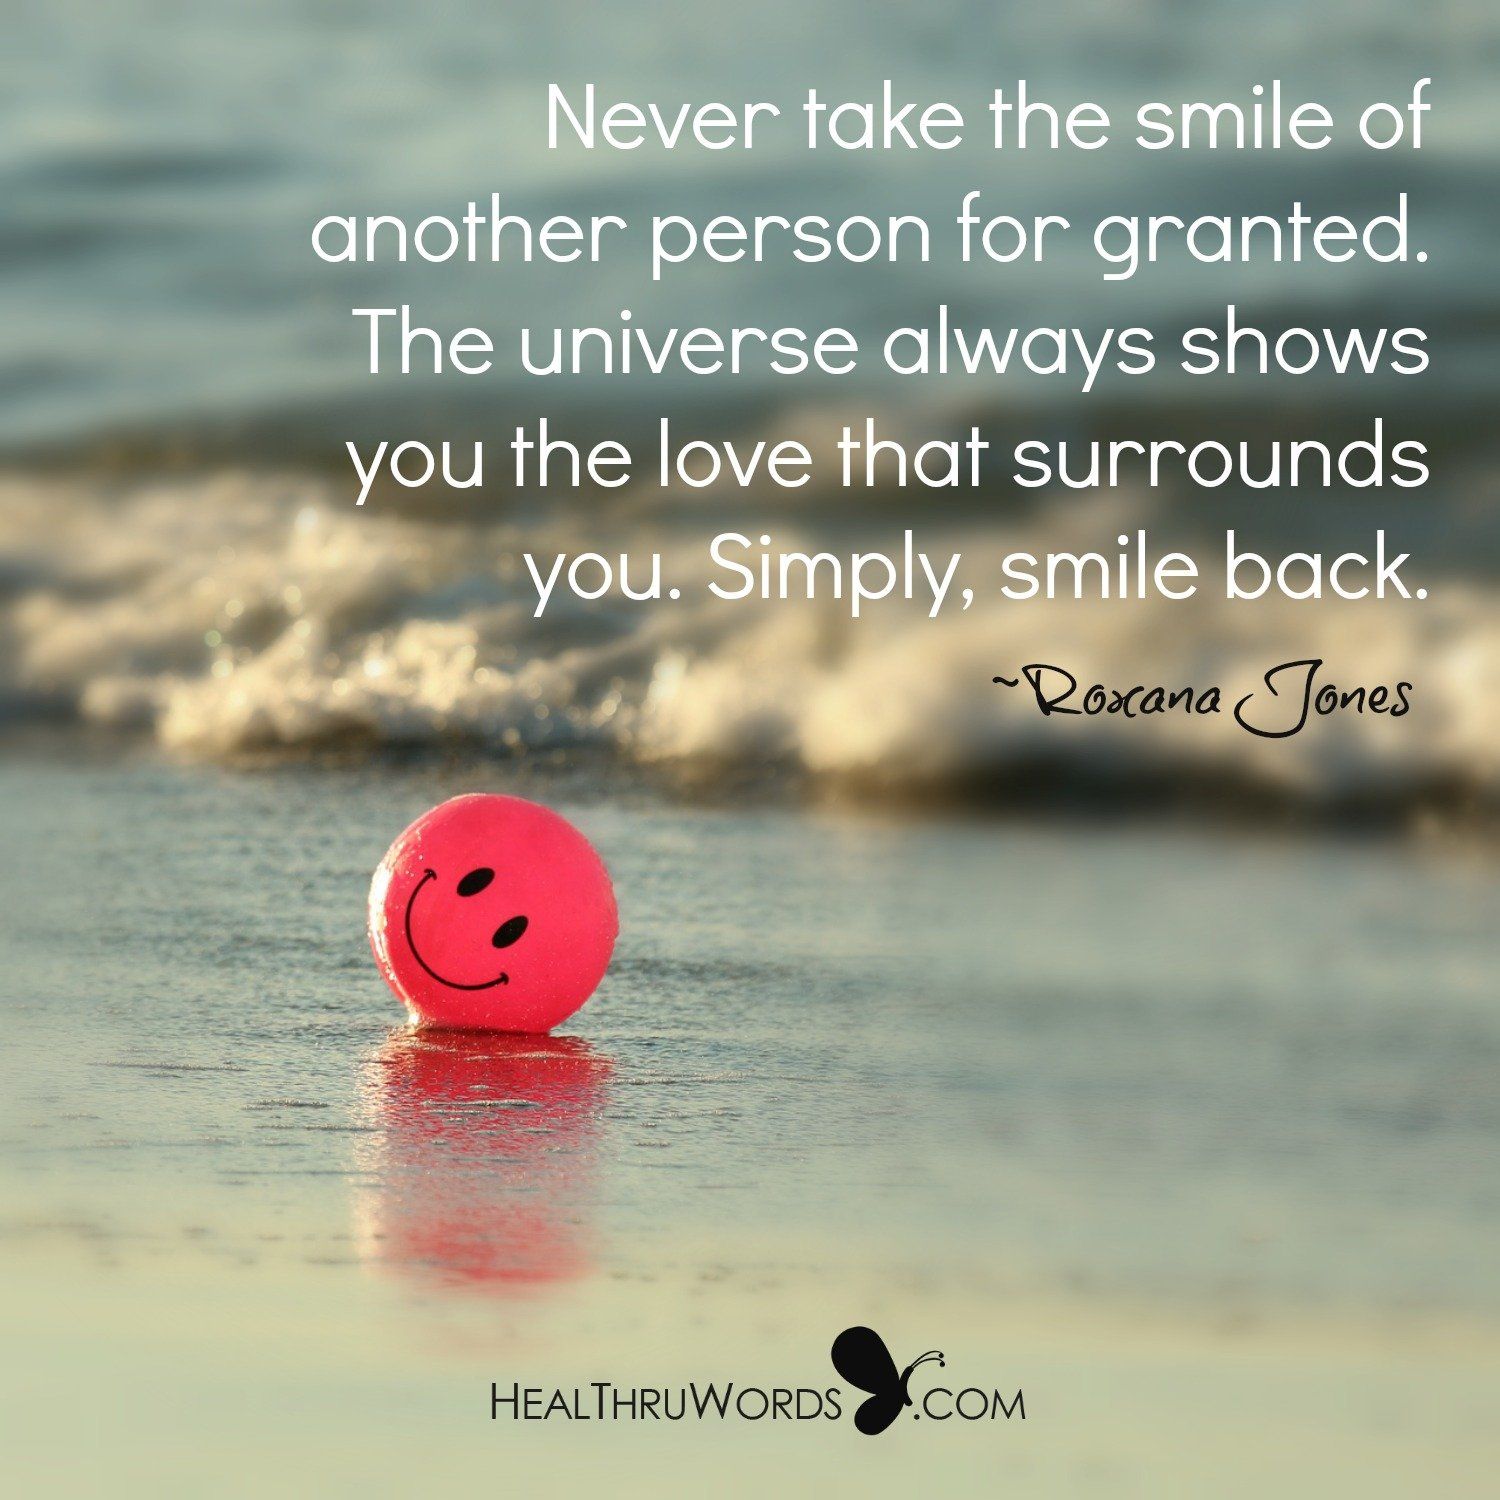 Inspirational Image: Receive Life's Love